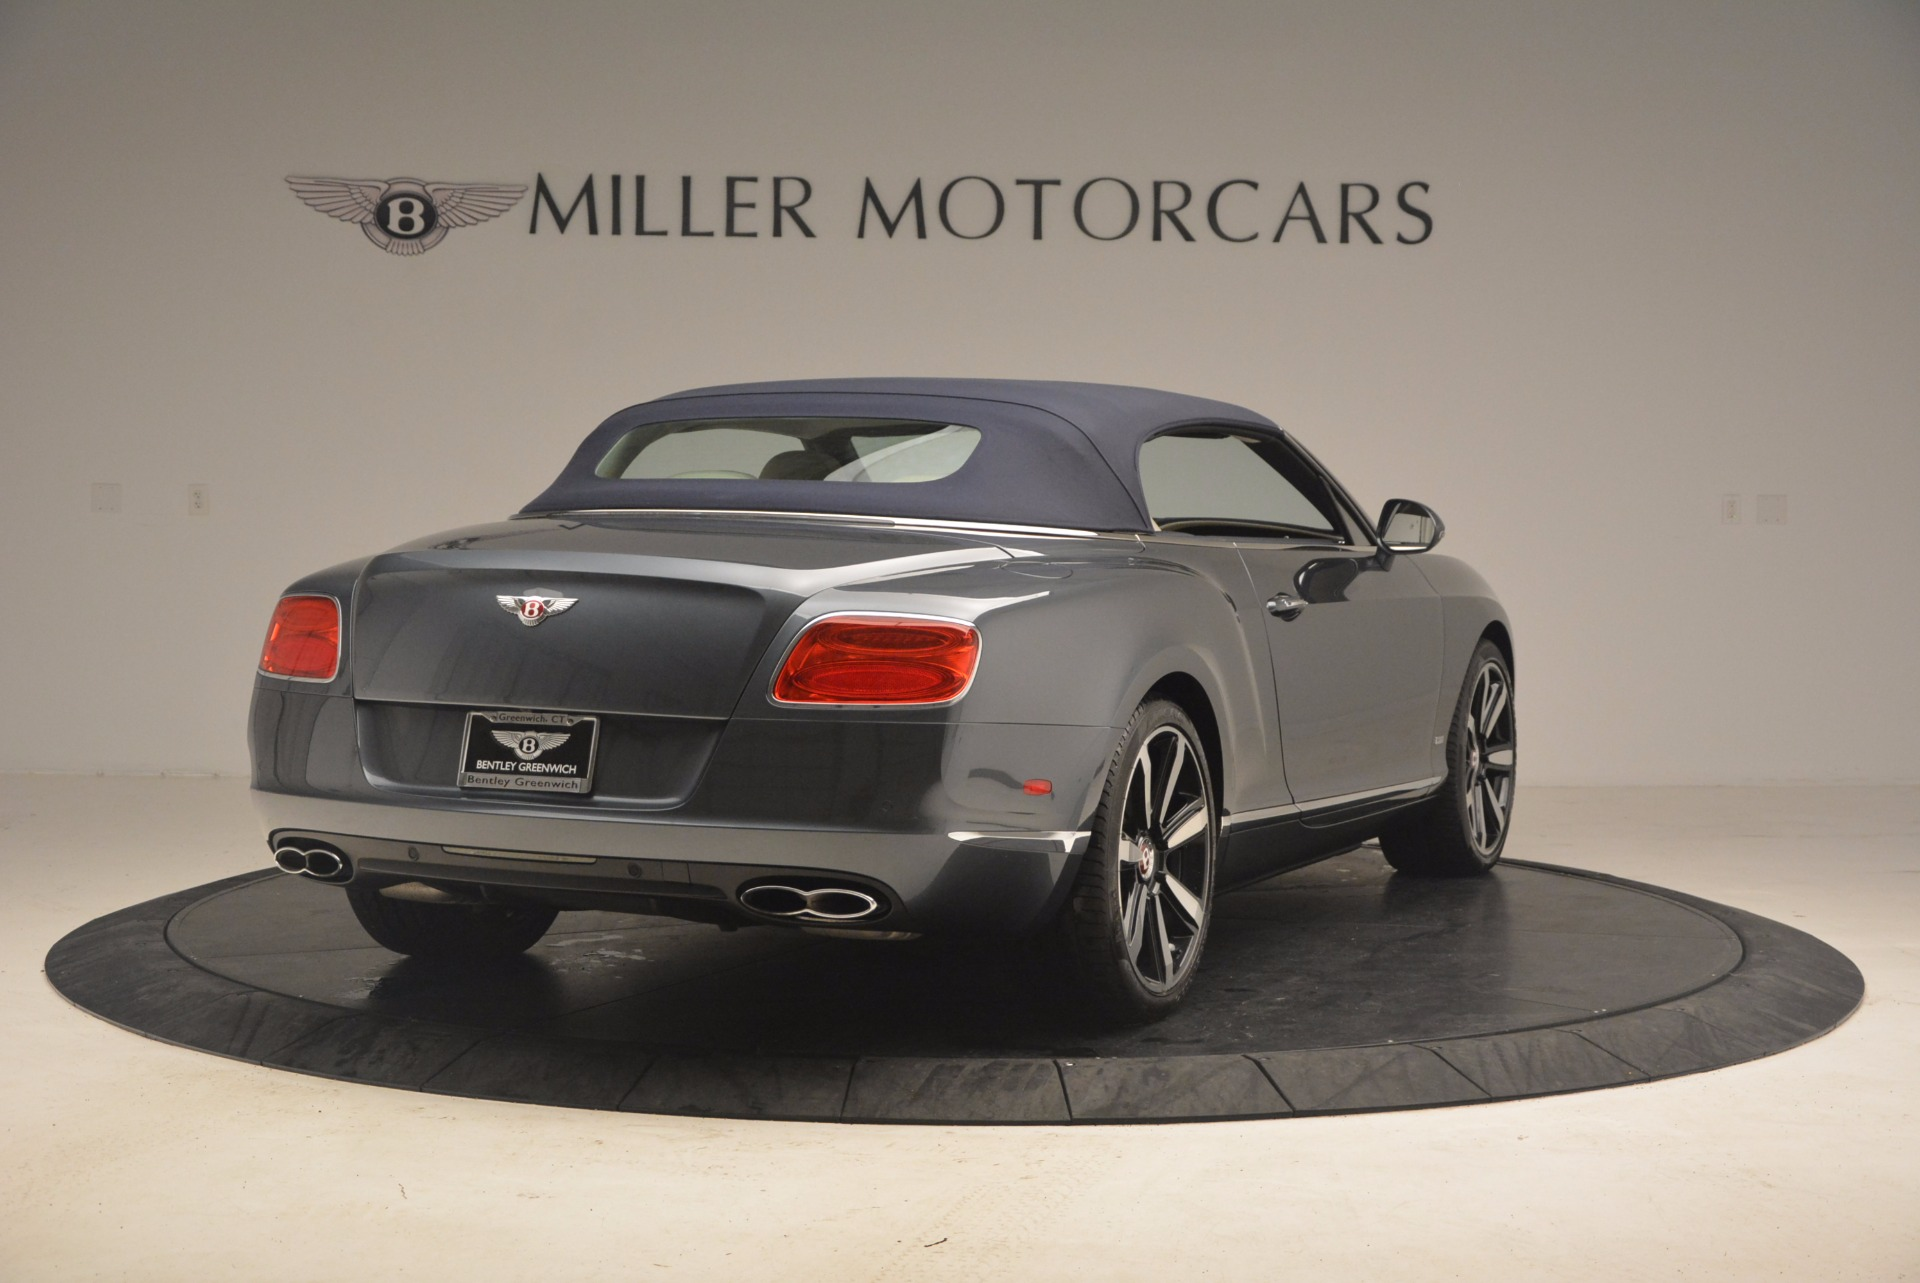 Used 2013 Bentley Continental GT V8 Le Mans Edition, 1 of 48 For Sale In Greenwich, CT. Alfa Romeo of Greenwich, 7226 1288_p20